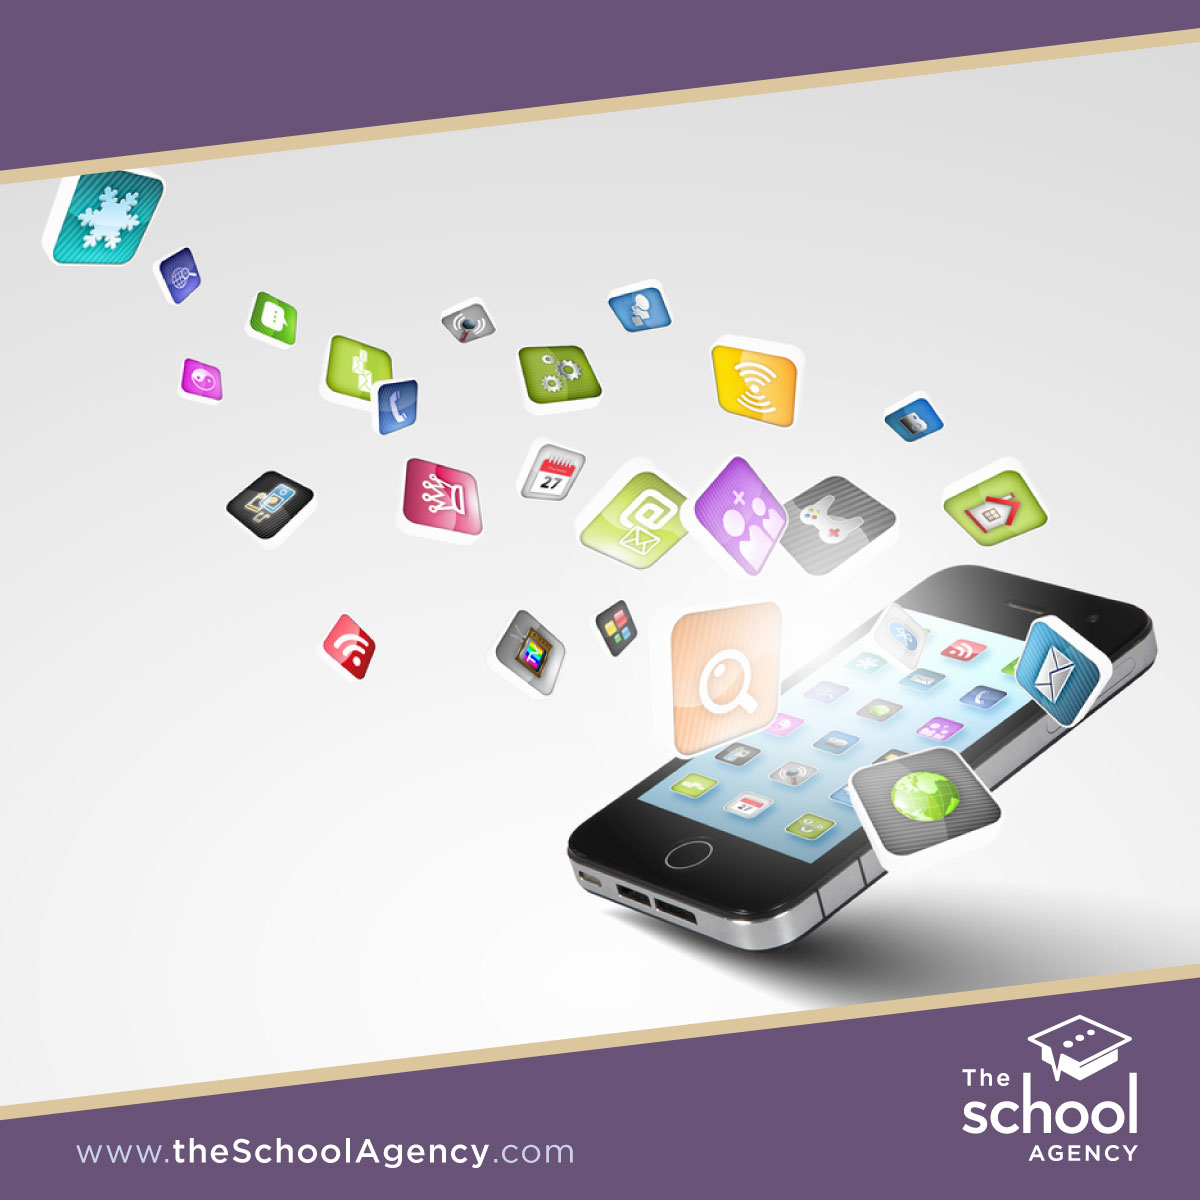 What are the advantages of a mobile app for schools?